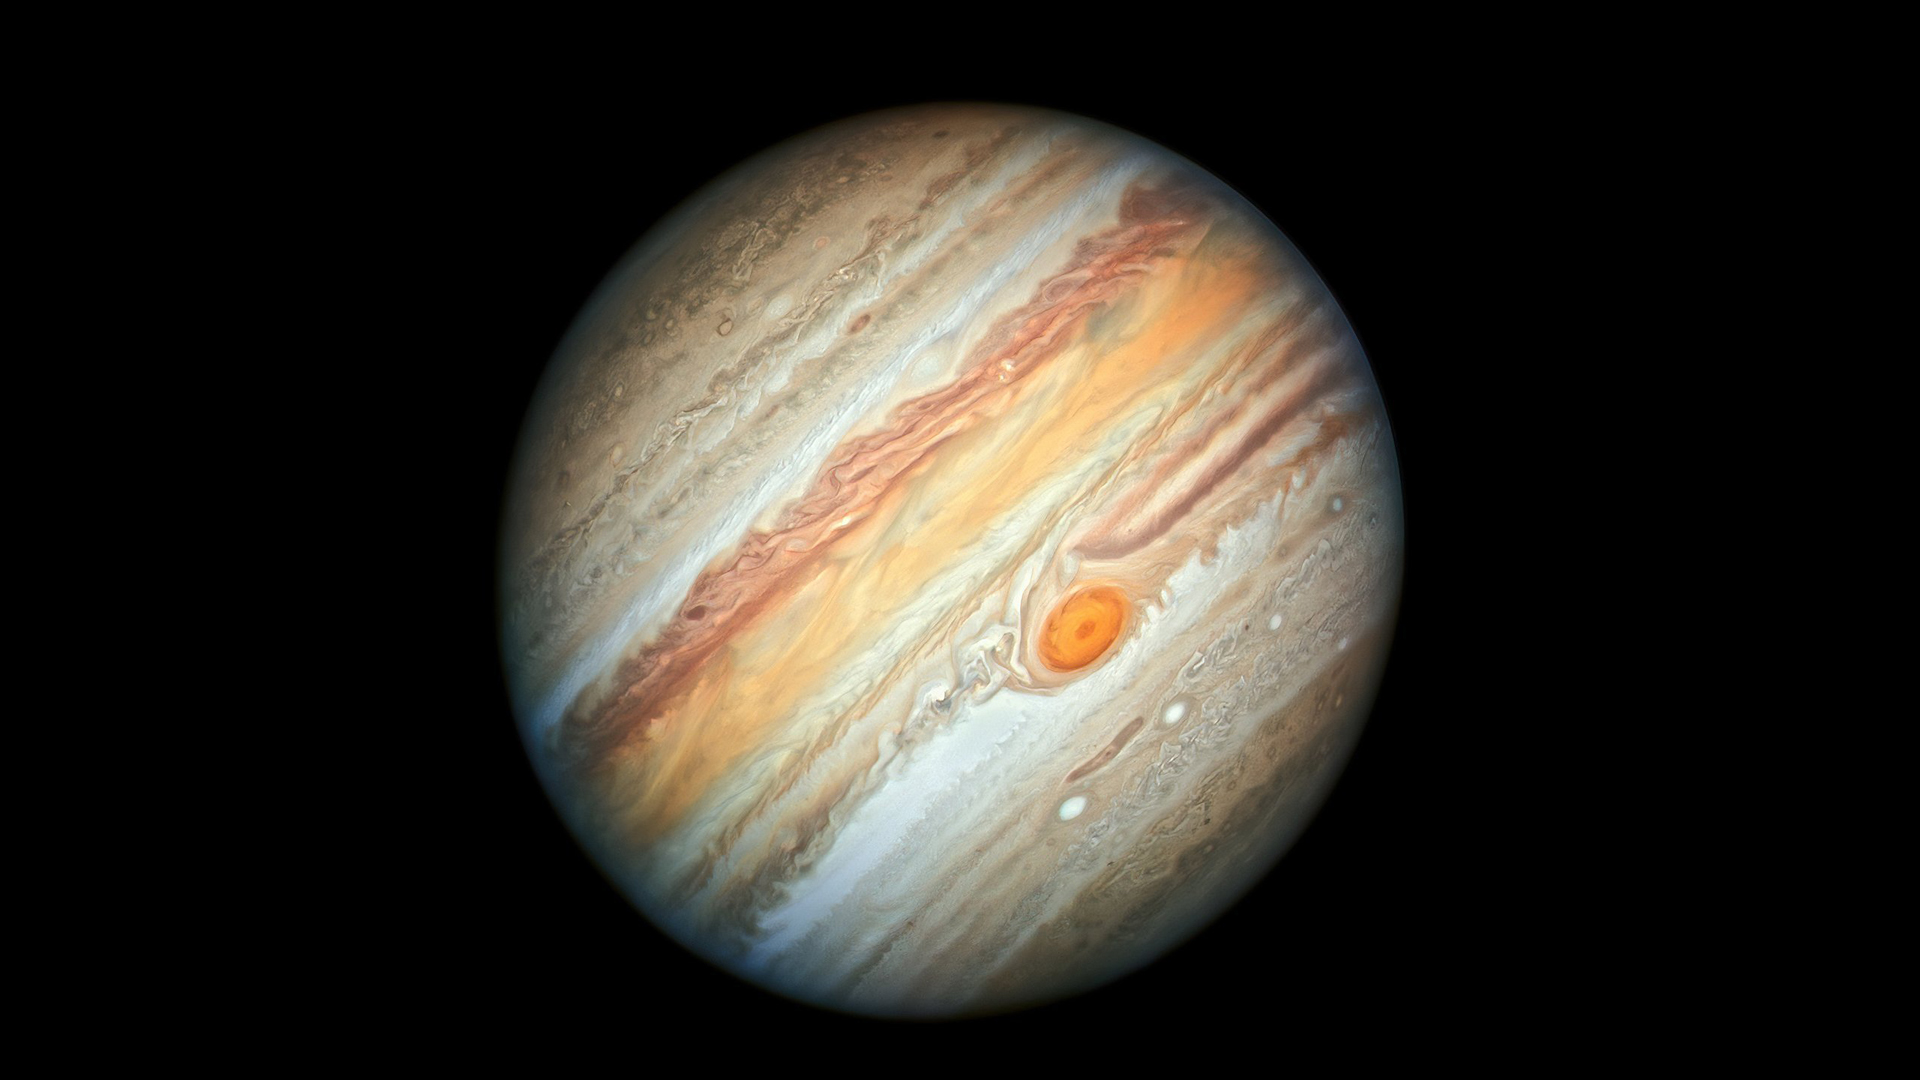 Last year, photos taken by NASA's Juno mission shows the Great Red Spot. (Credit: A. Simon/M.H. Wong/ESA/Hubble/NASA)